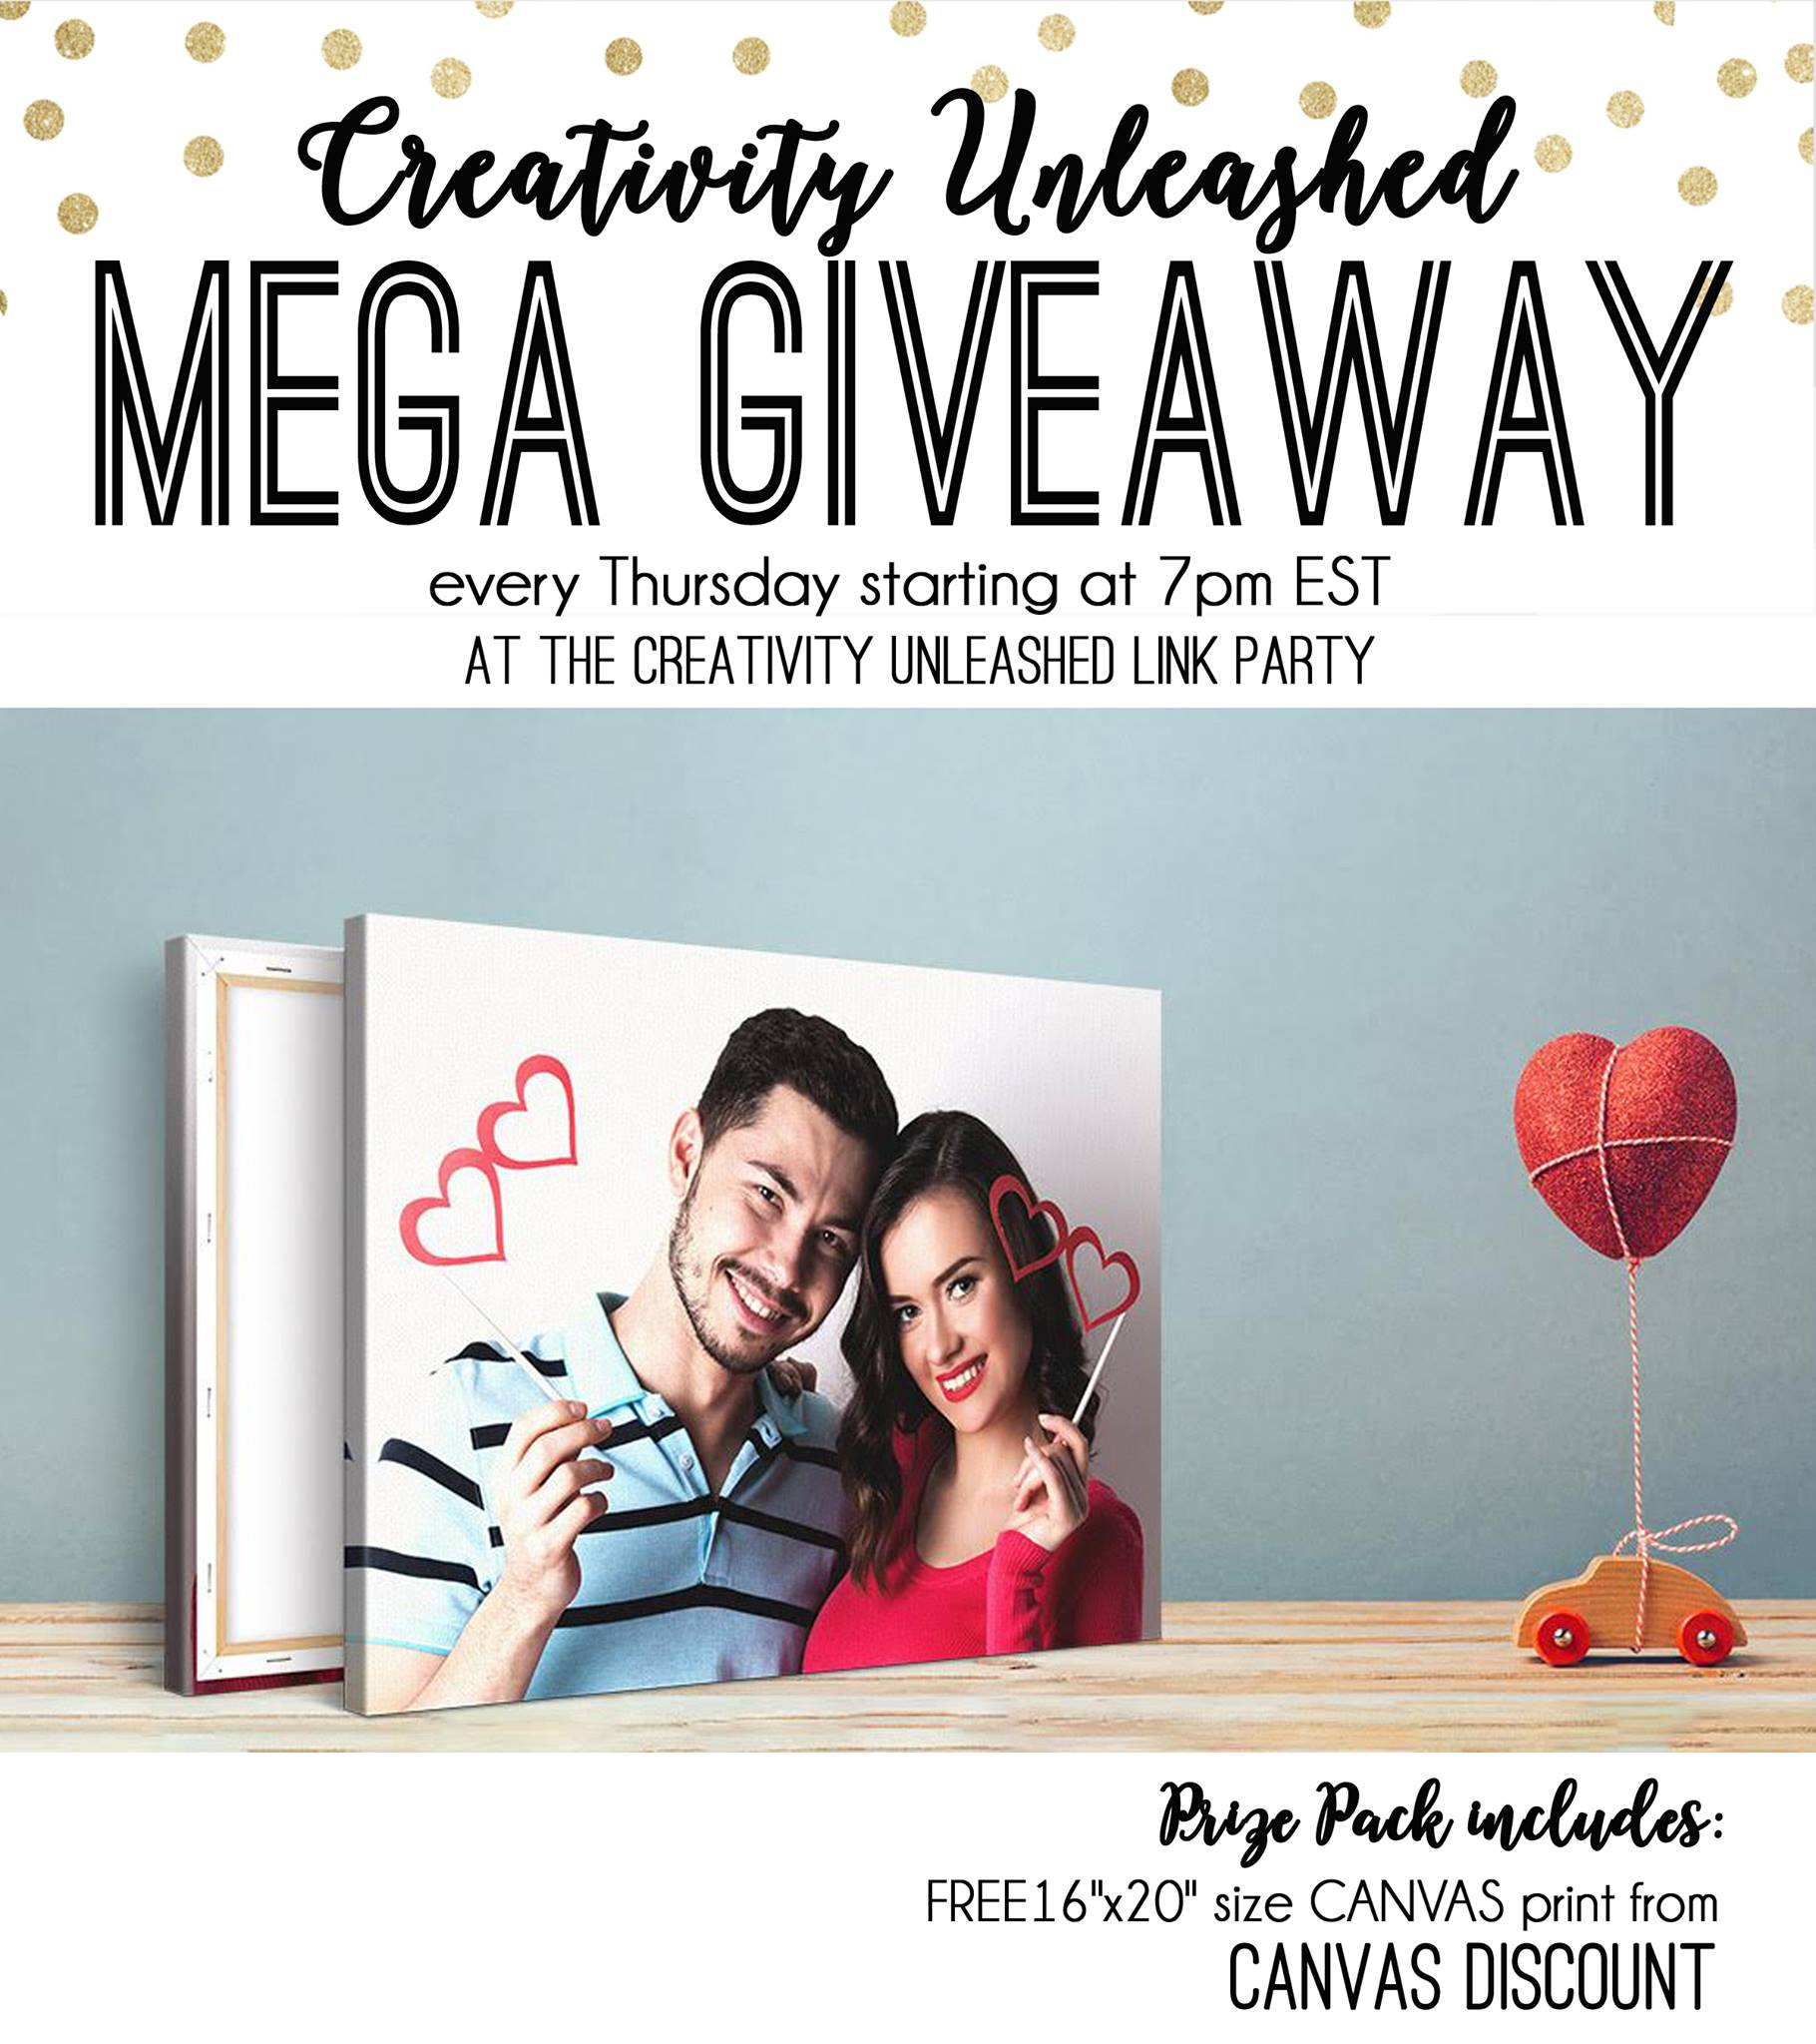 Share your latest projects, browse hundreds of others for inspiration, and enter to win a free canvas print at the Creativity Unleashed party!